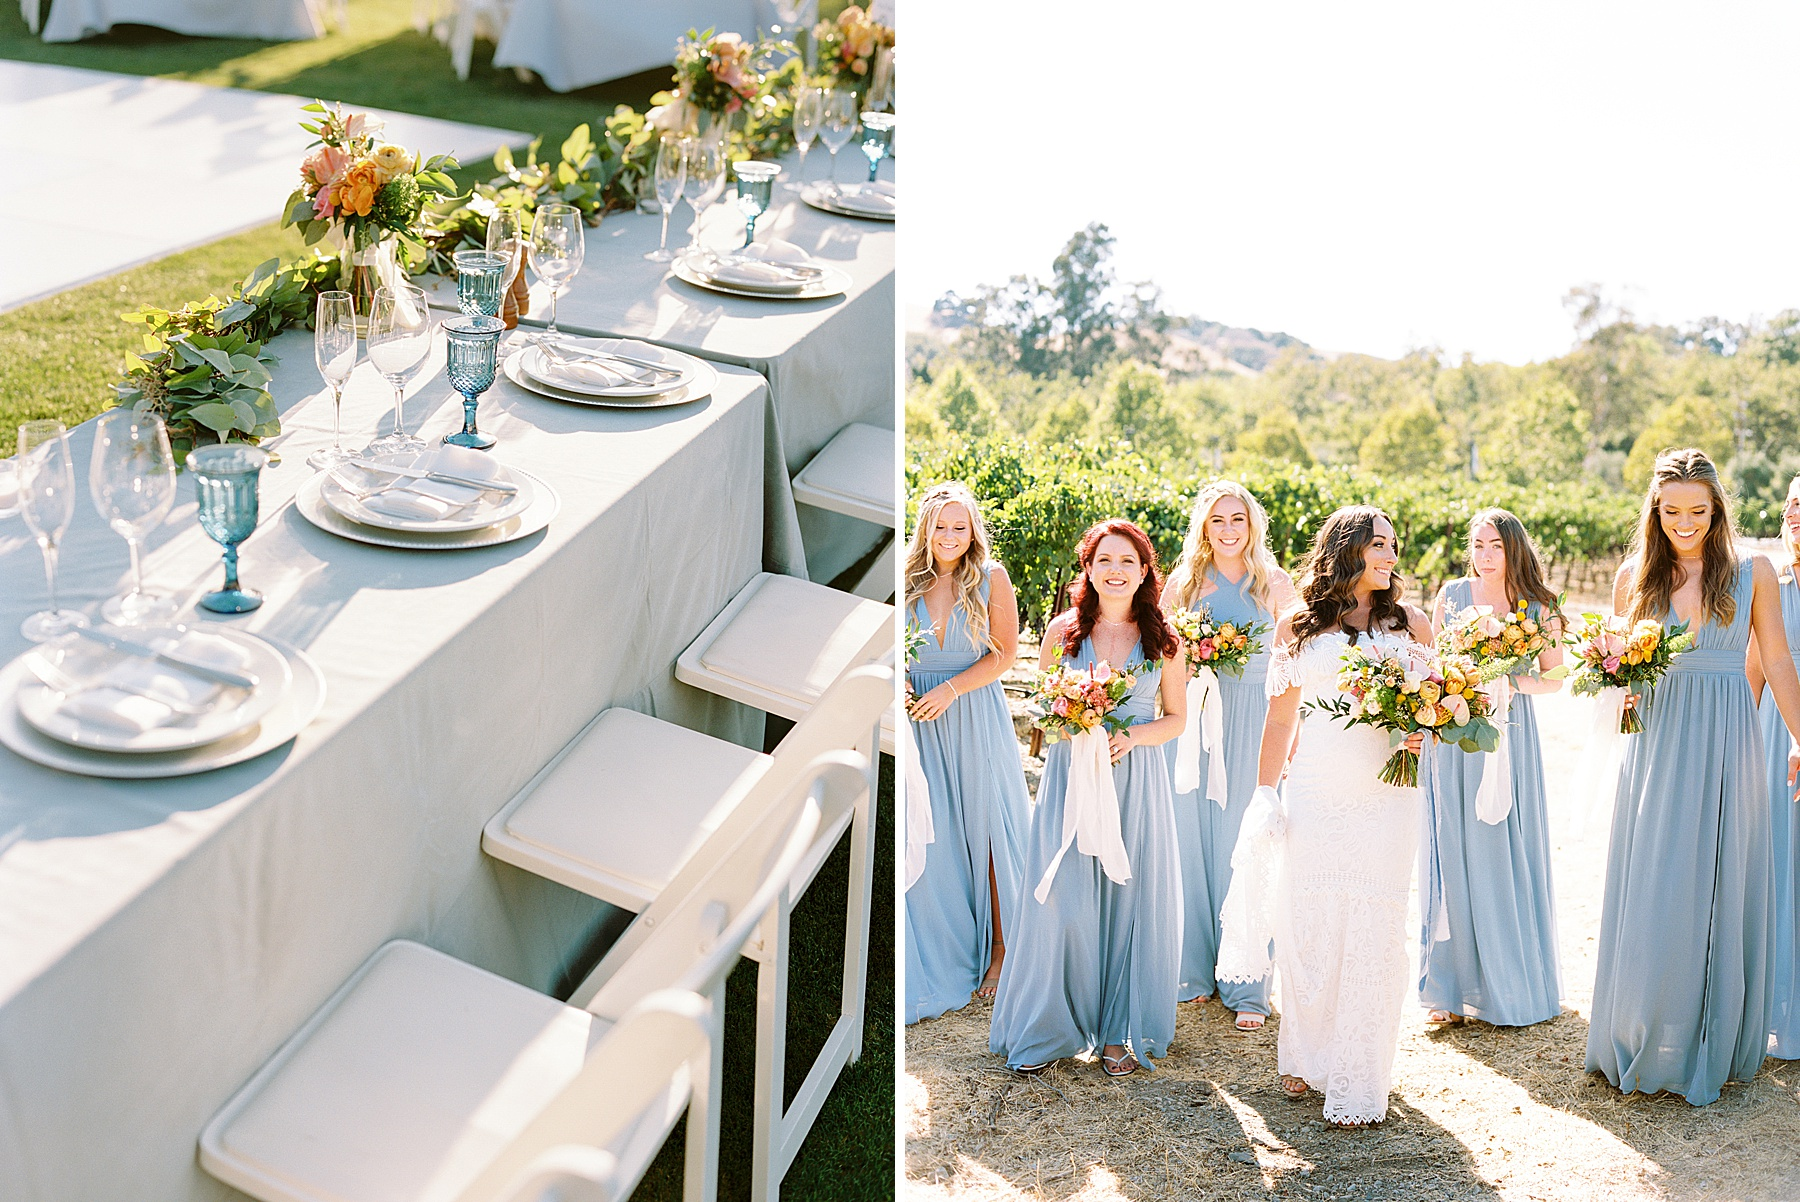 Wente Wedding with A Tropical Color Palette - Ashley & Mike - Featured on Inspired by This - Ashley Baumgartner_0029.jpg